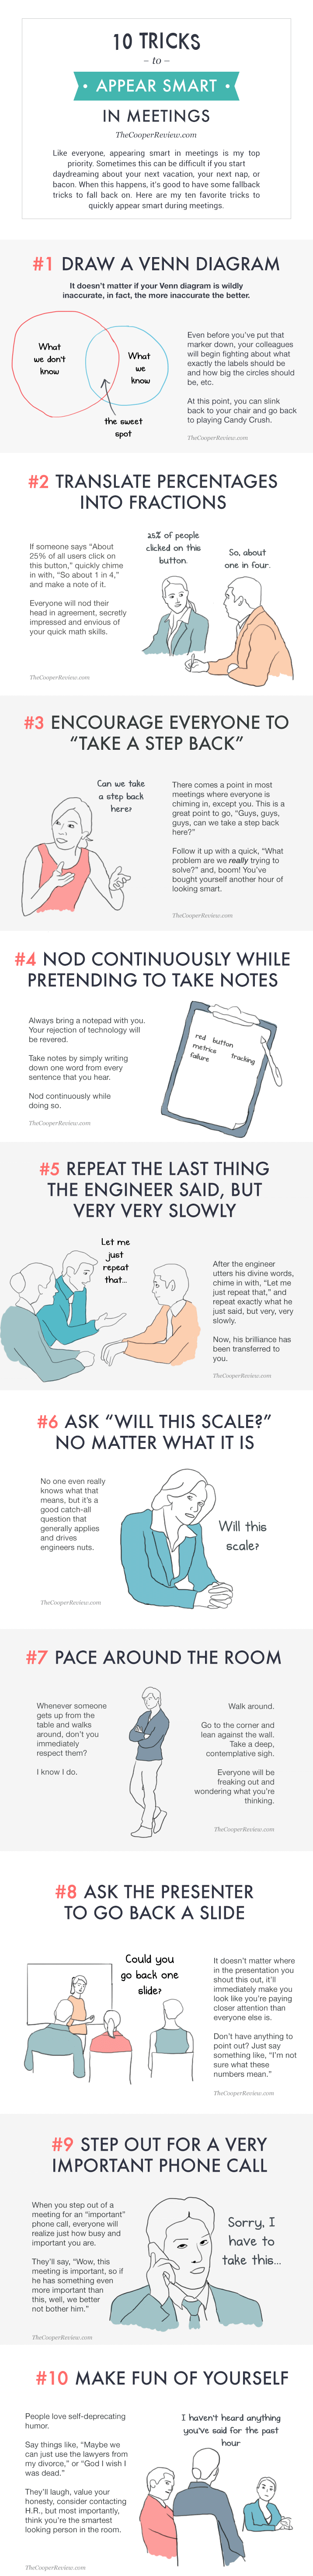 Infographic: 10 tricks to appear smart in meetings